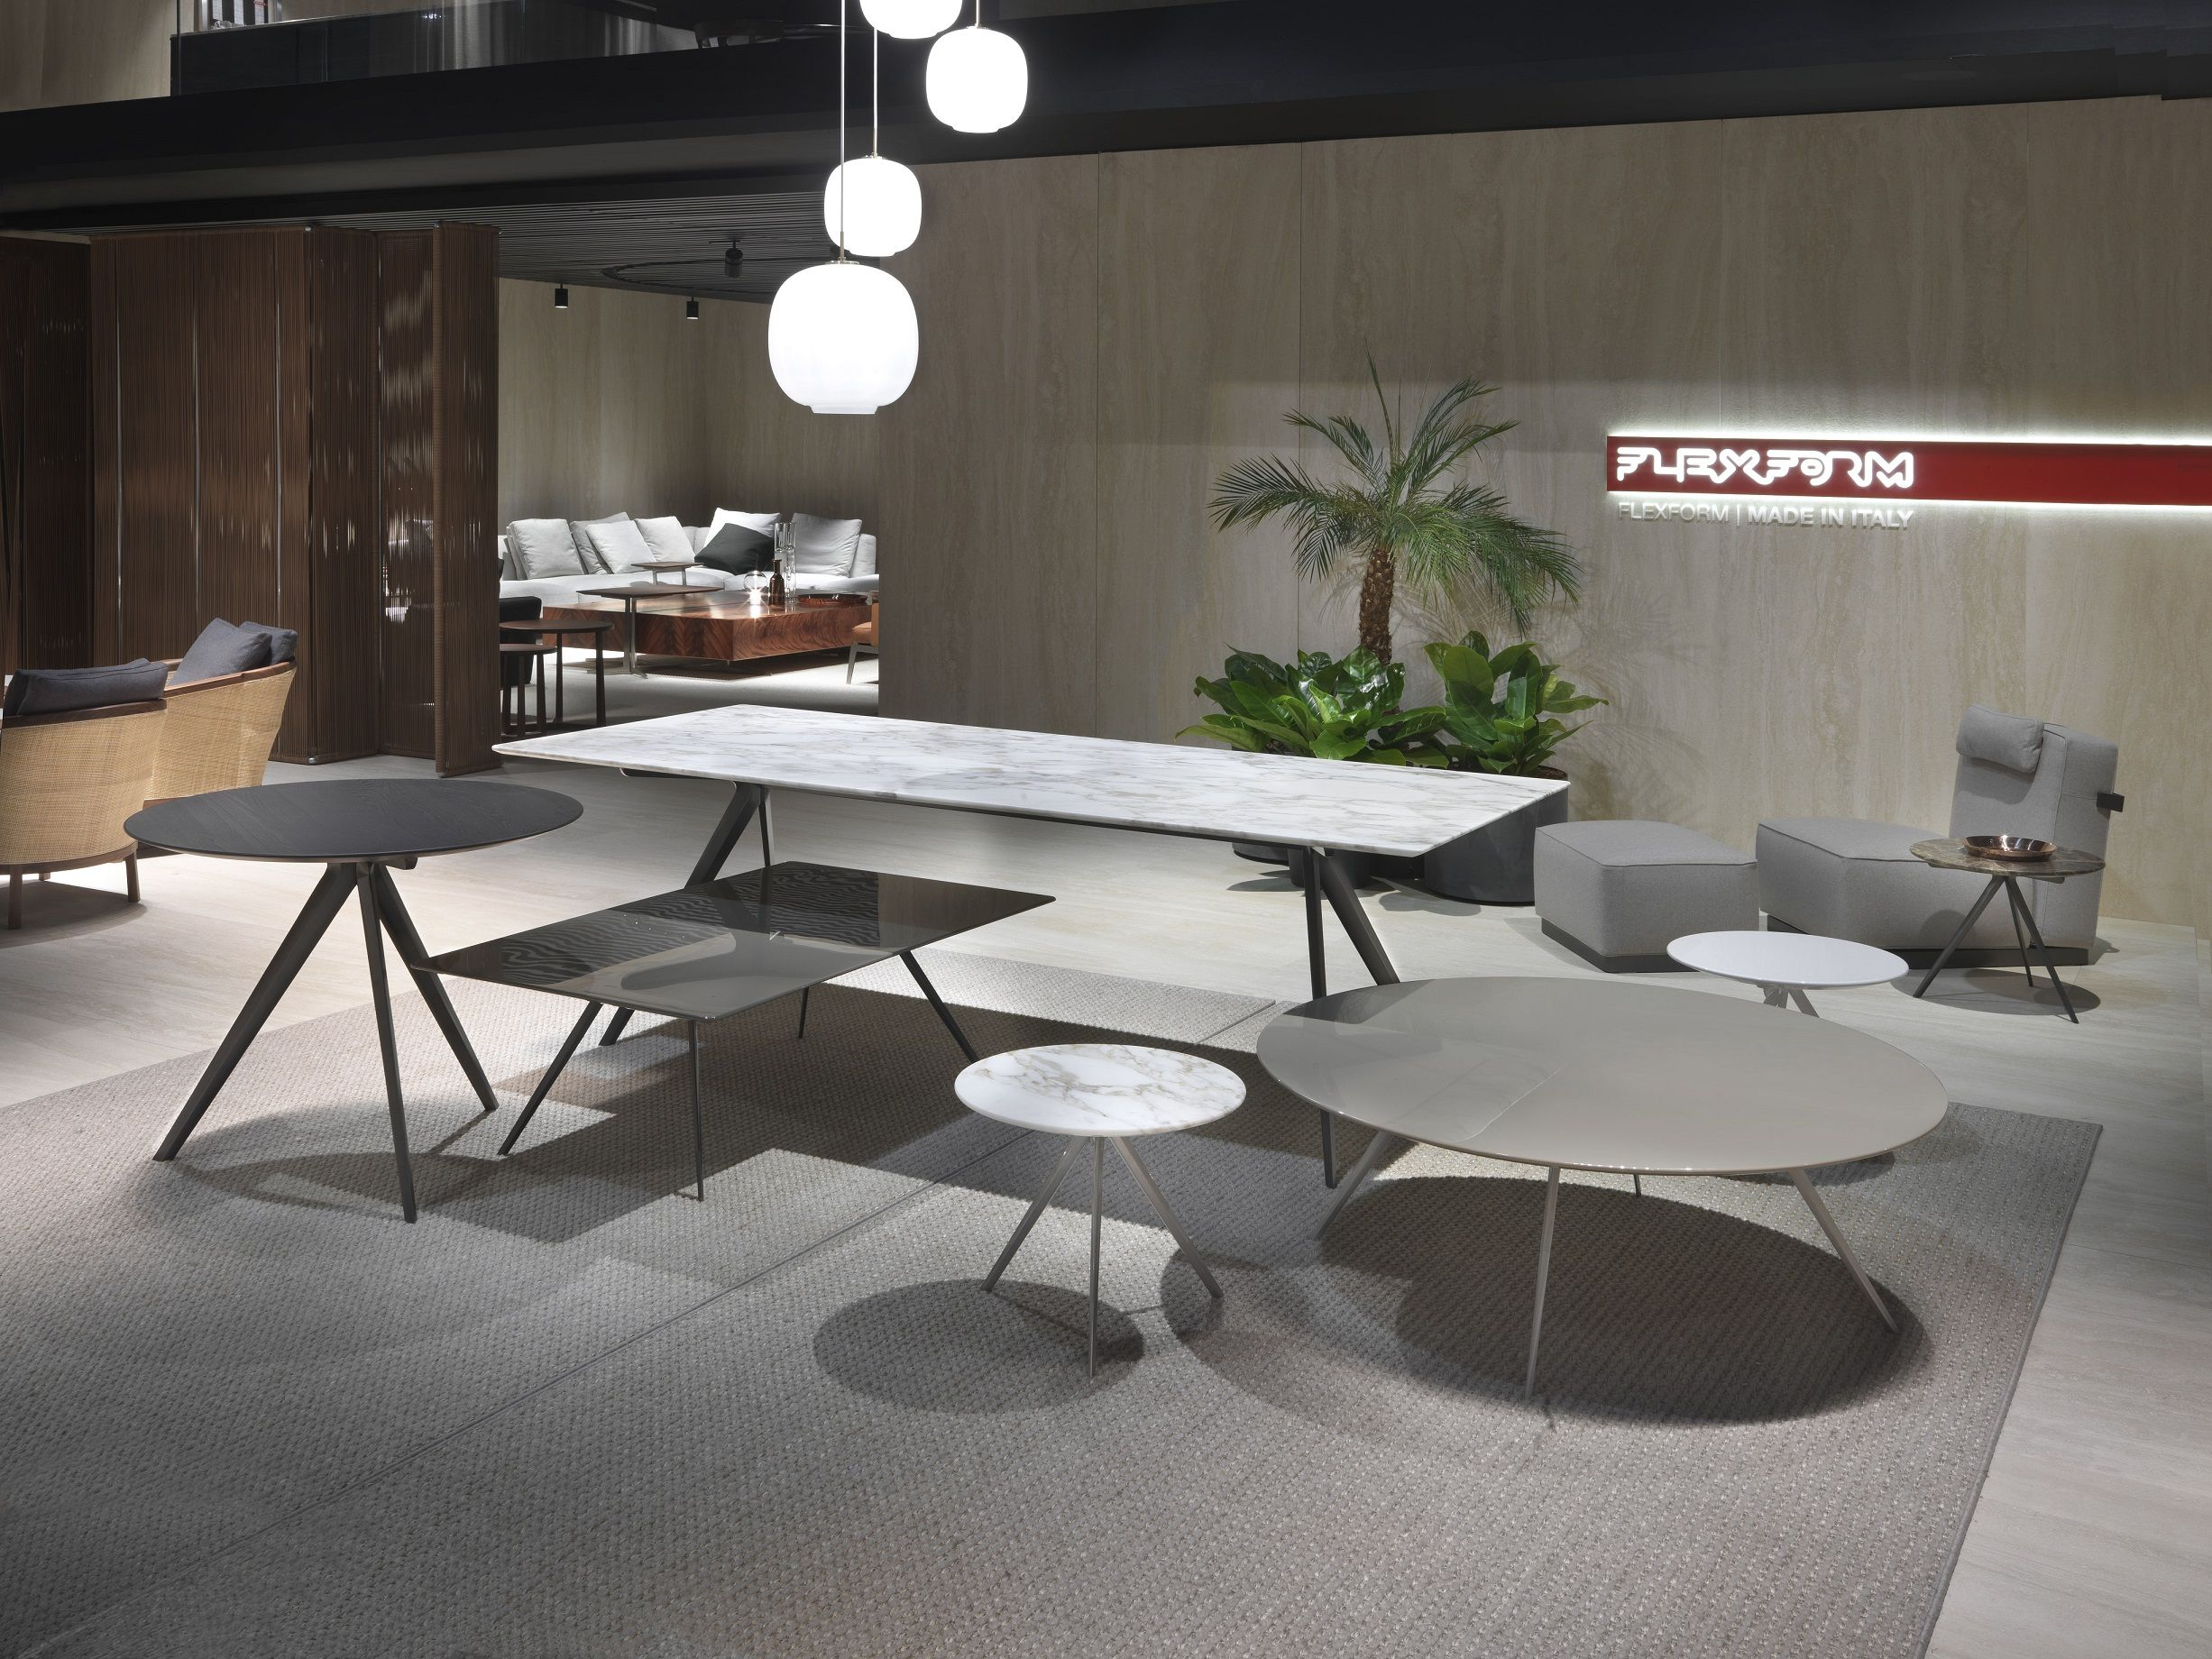 Mobilia design coffee and side tables -  Flexform Zefiro New Table Collection Design Antonio Citterio Side Tablescoffee Tables